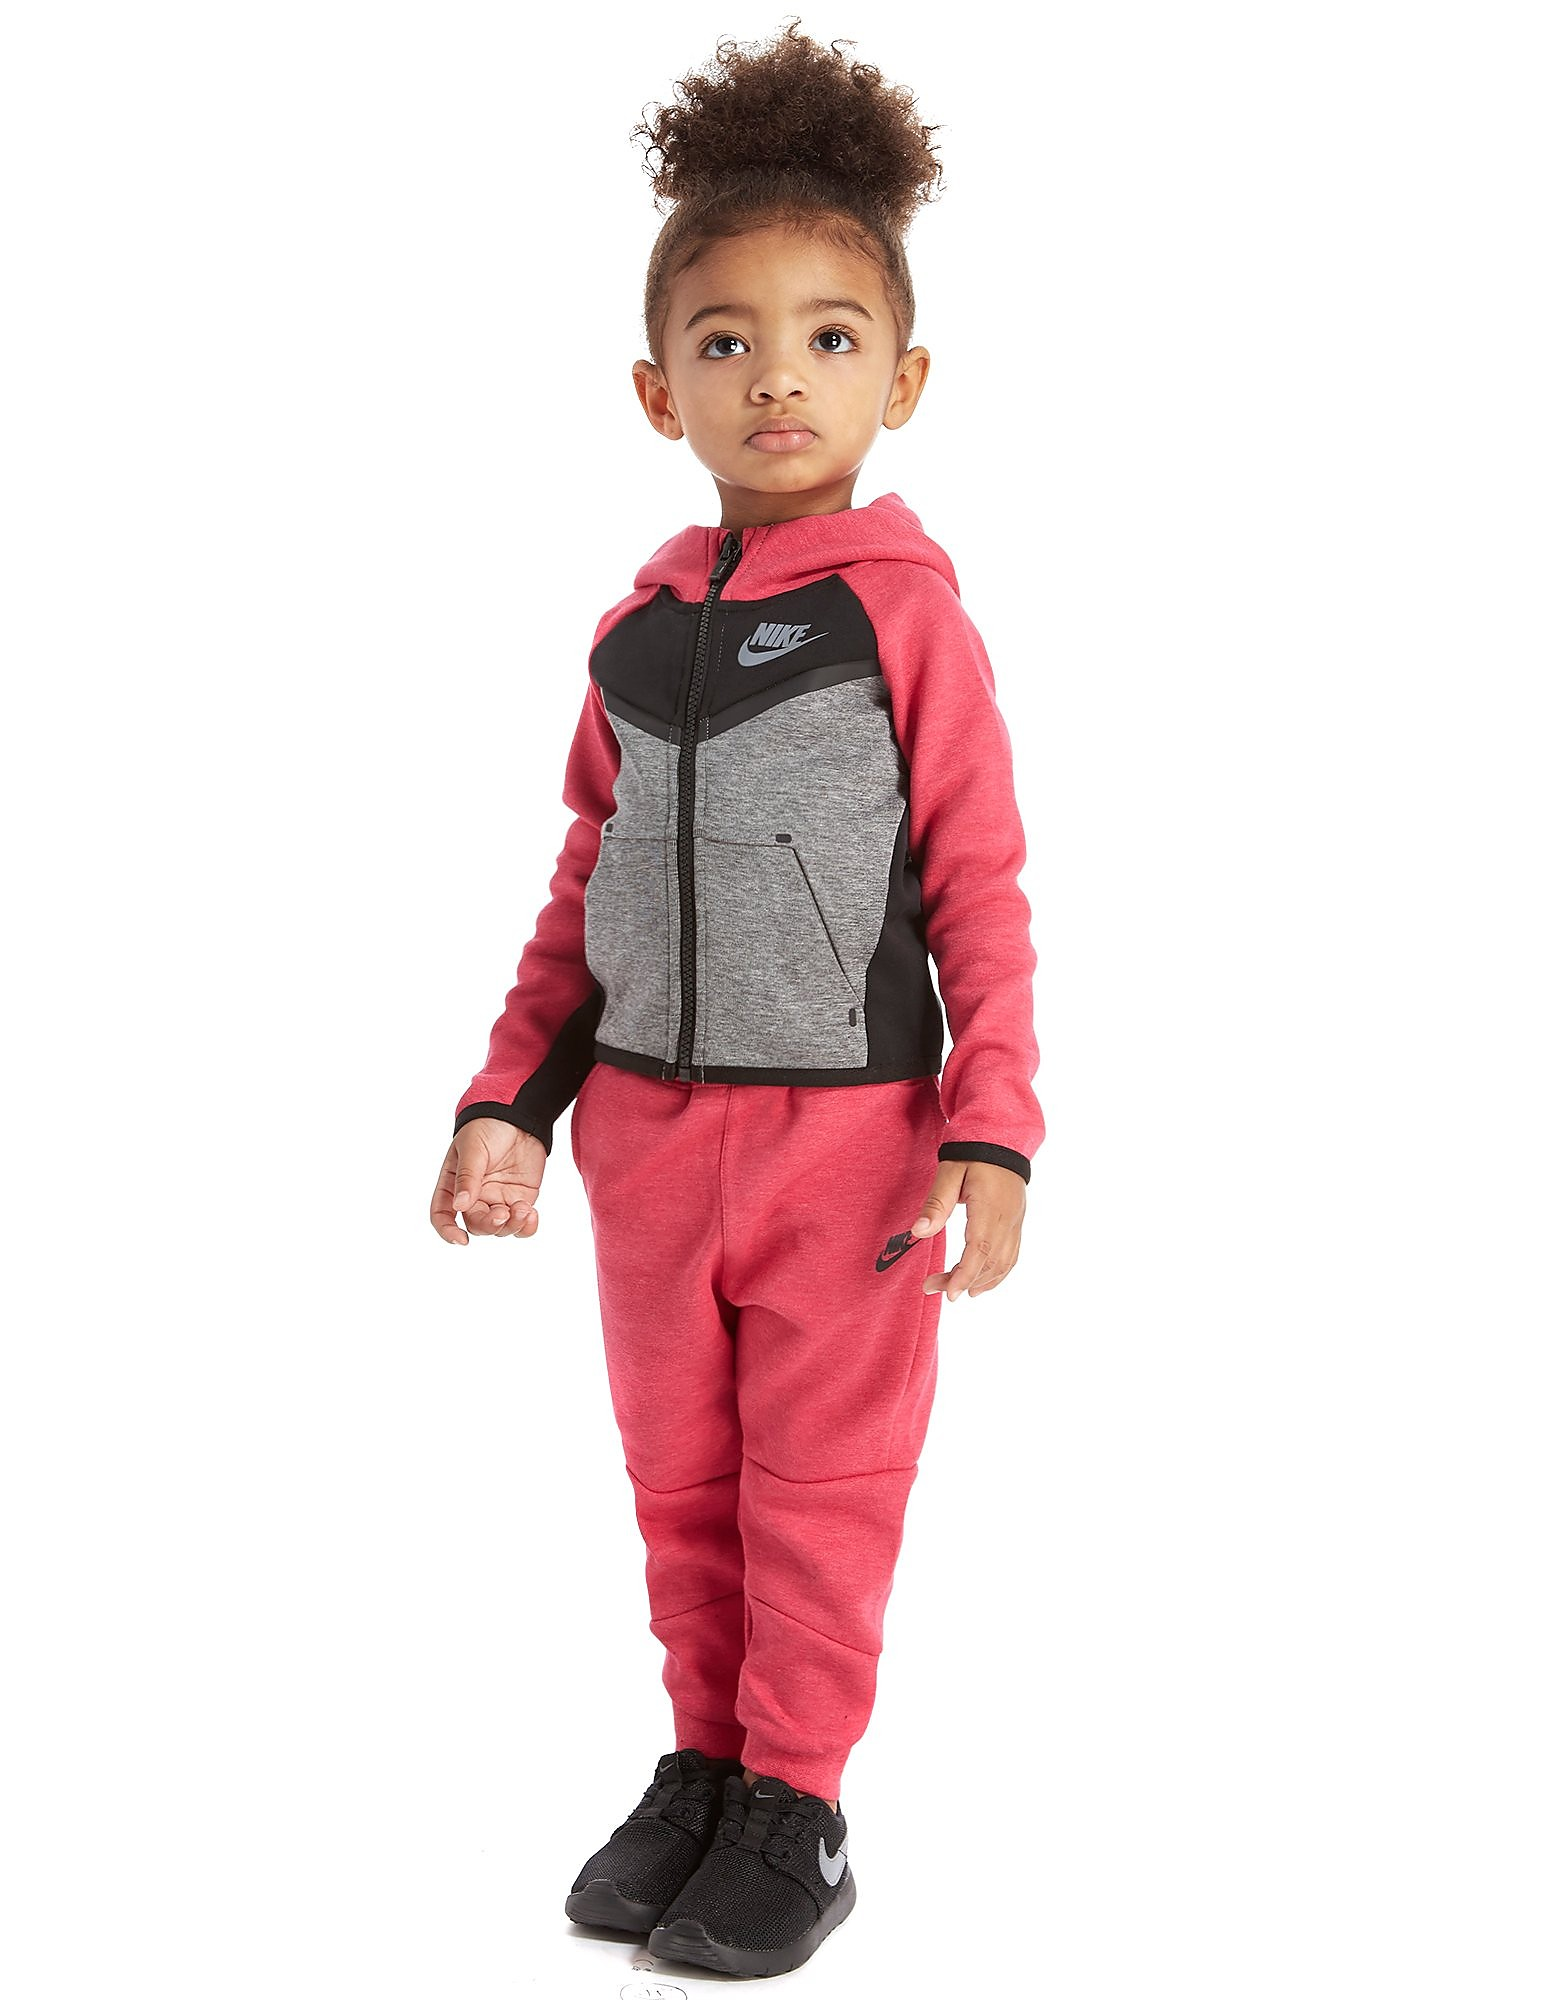 Nike Girls' Tech Fleece Set Infant